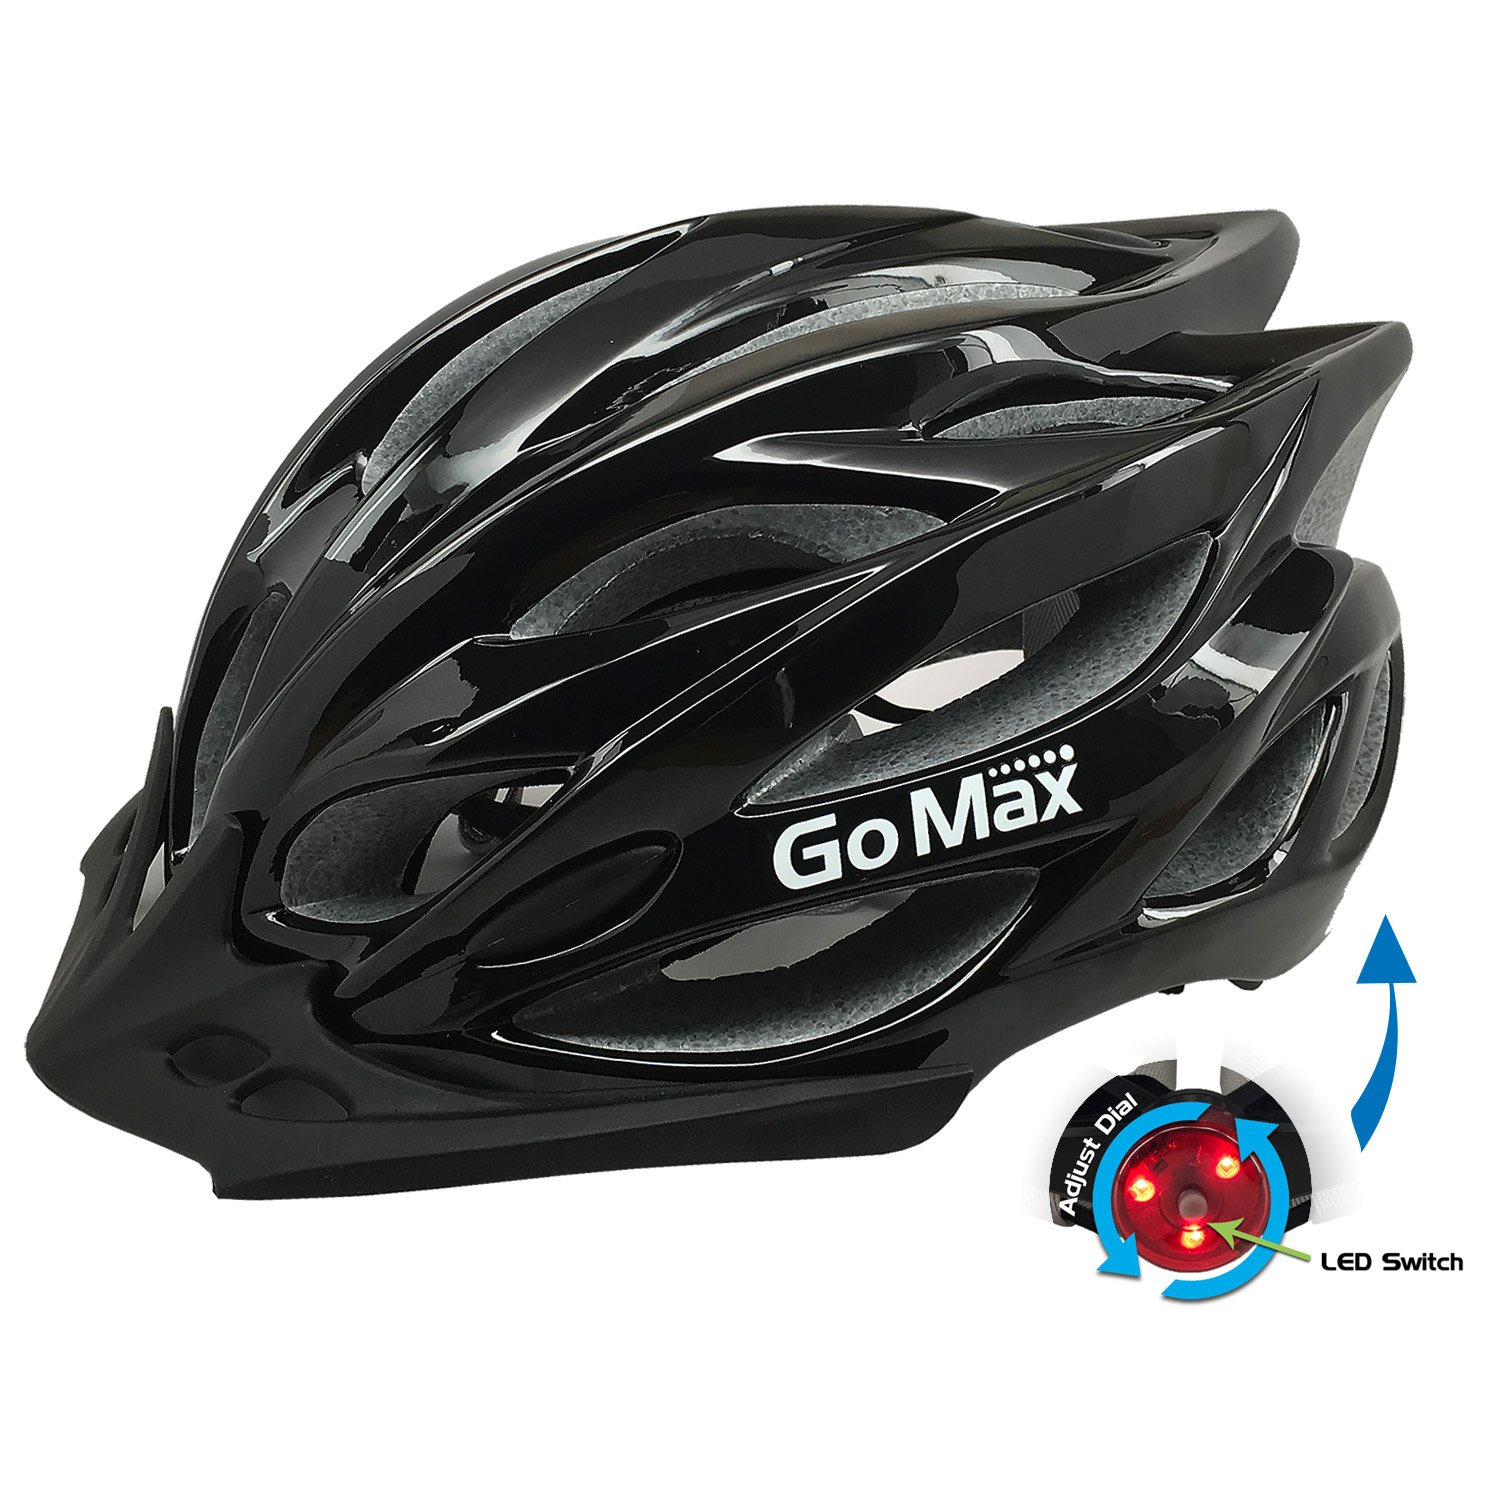 GoMax Aero Adult Safety Helmet Adjustable Road Cycling Mountain Bike Bicycle Helmet Ultralight Inner Padding Chin Protector